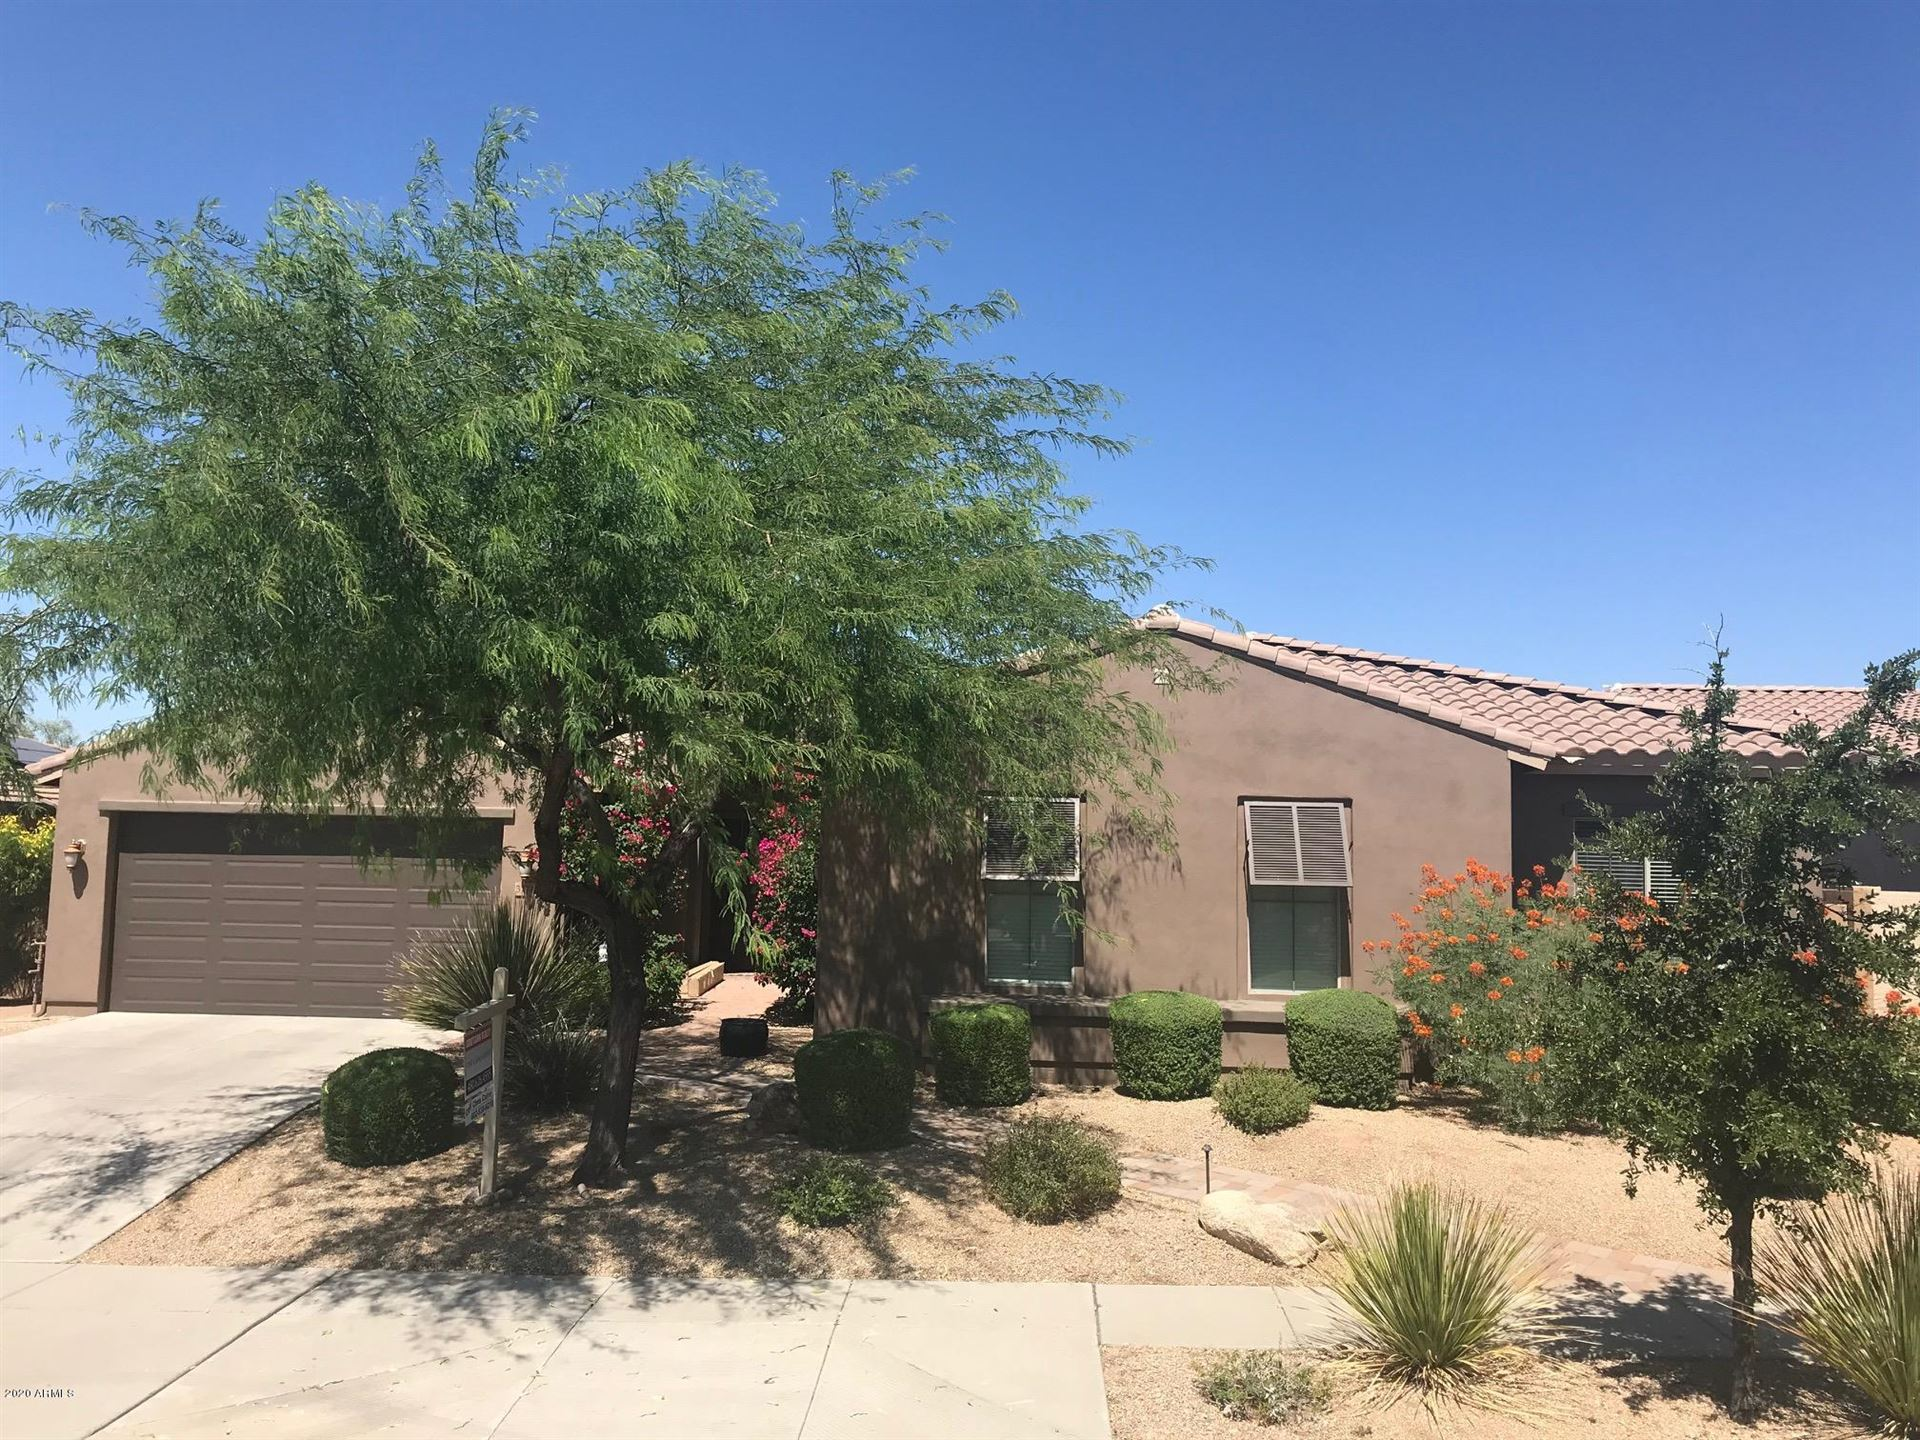 31714 N 15TH Glen, Phoenix, AZ 85085 - MLS#: 6097589